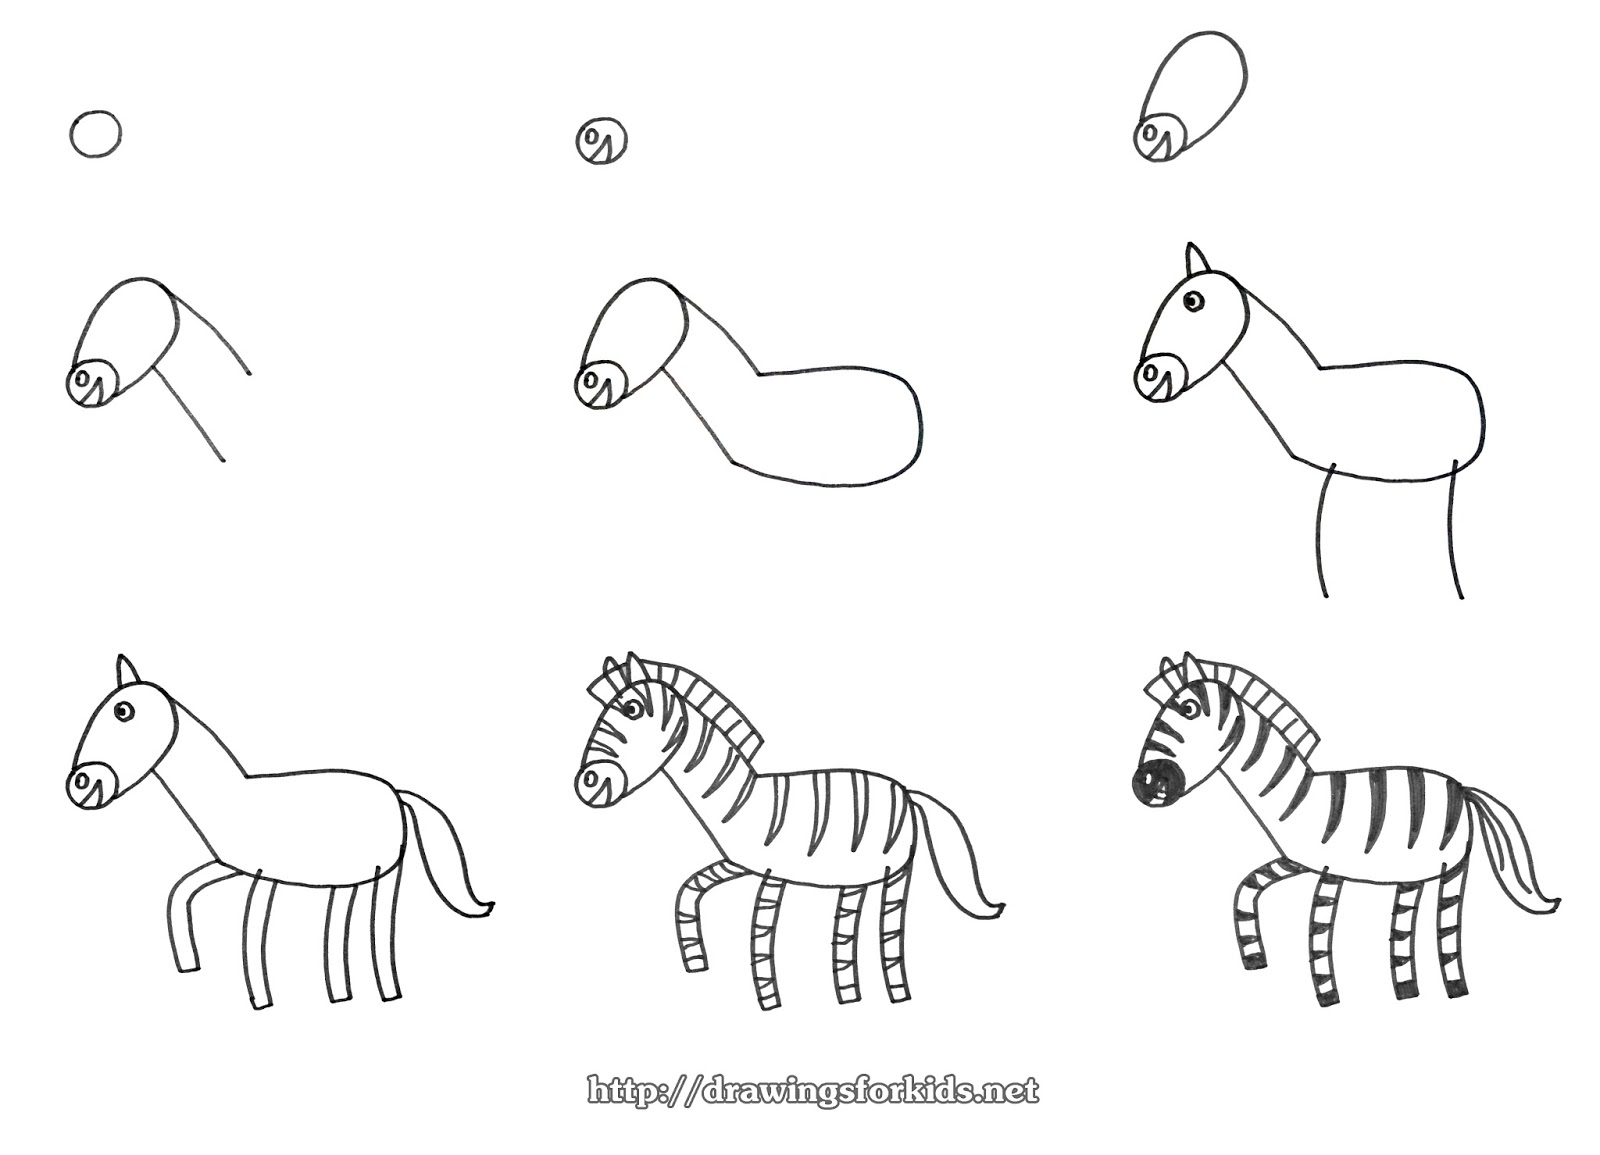 step by step how to draw a zebra how to draw a zebra to a how draw by step zebra step